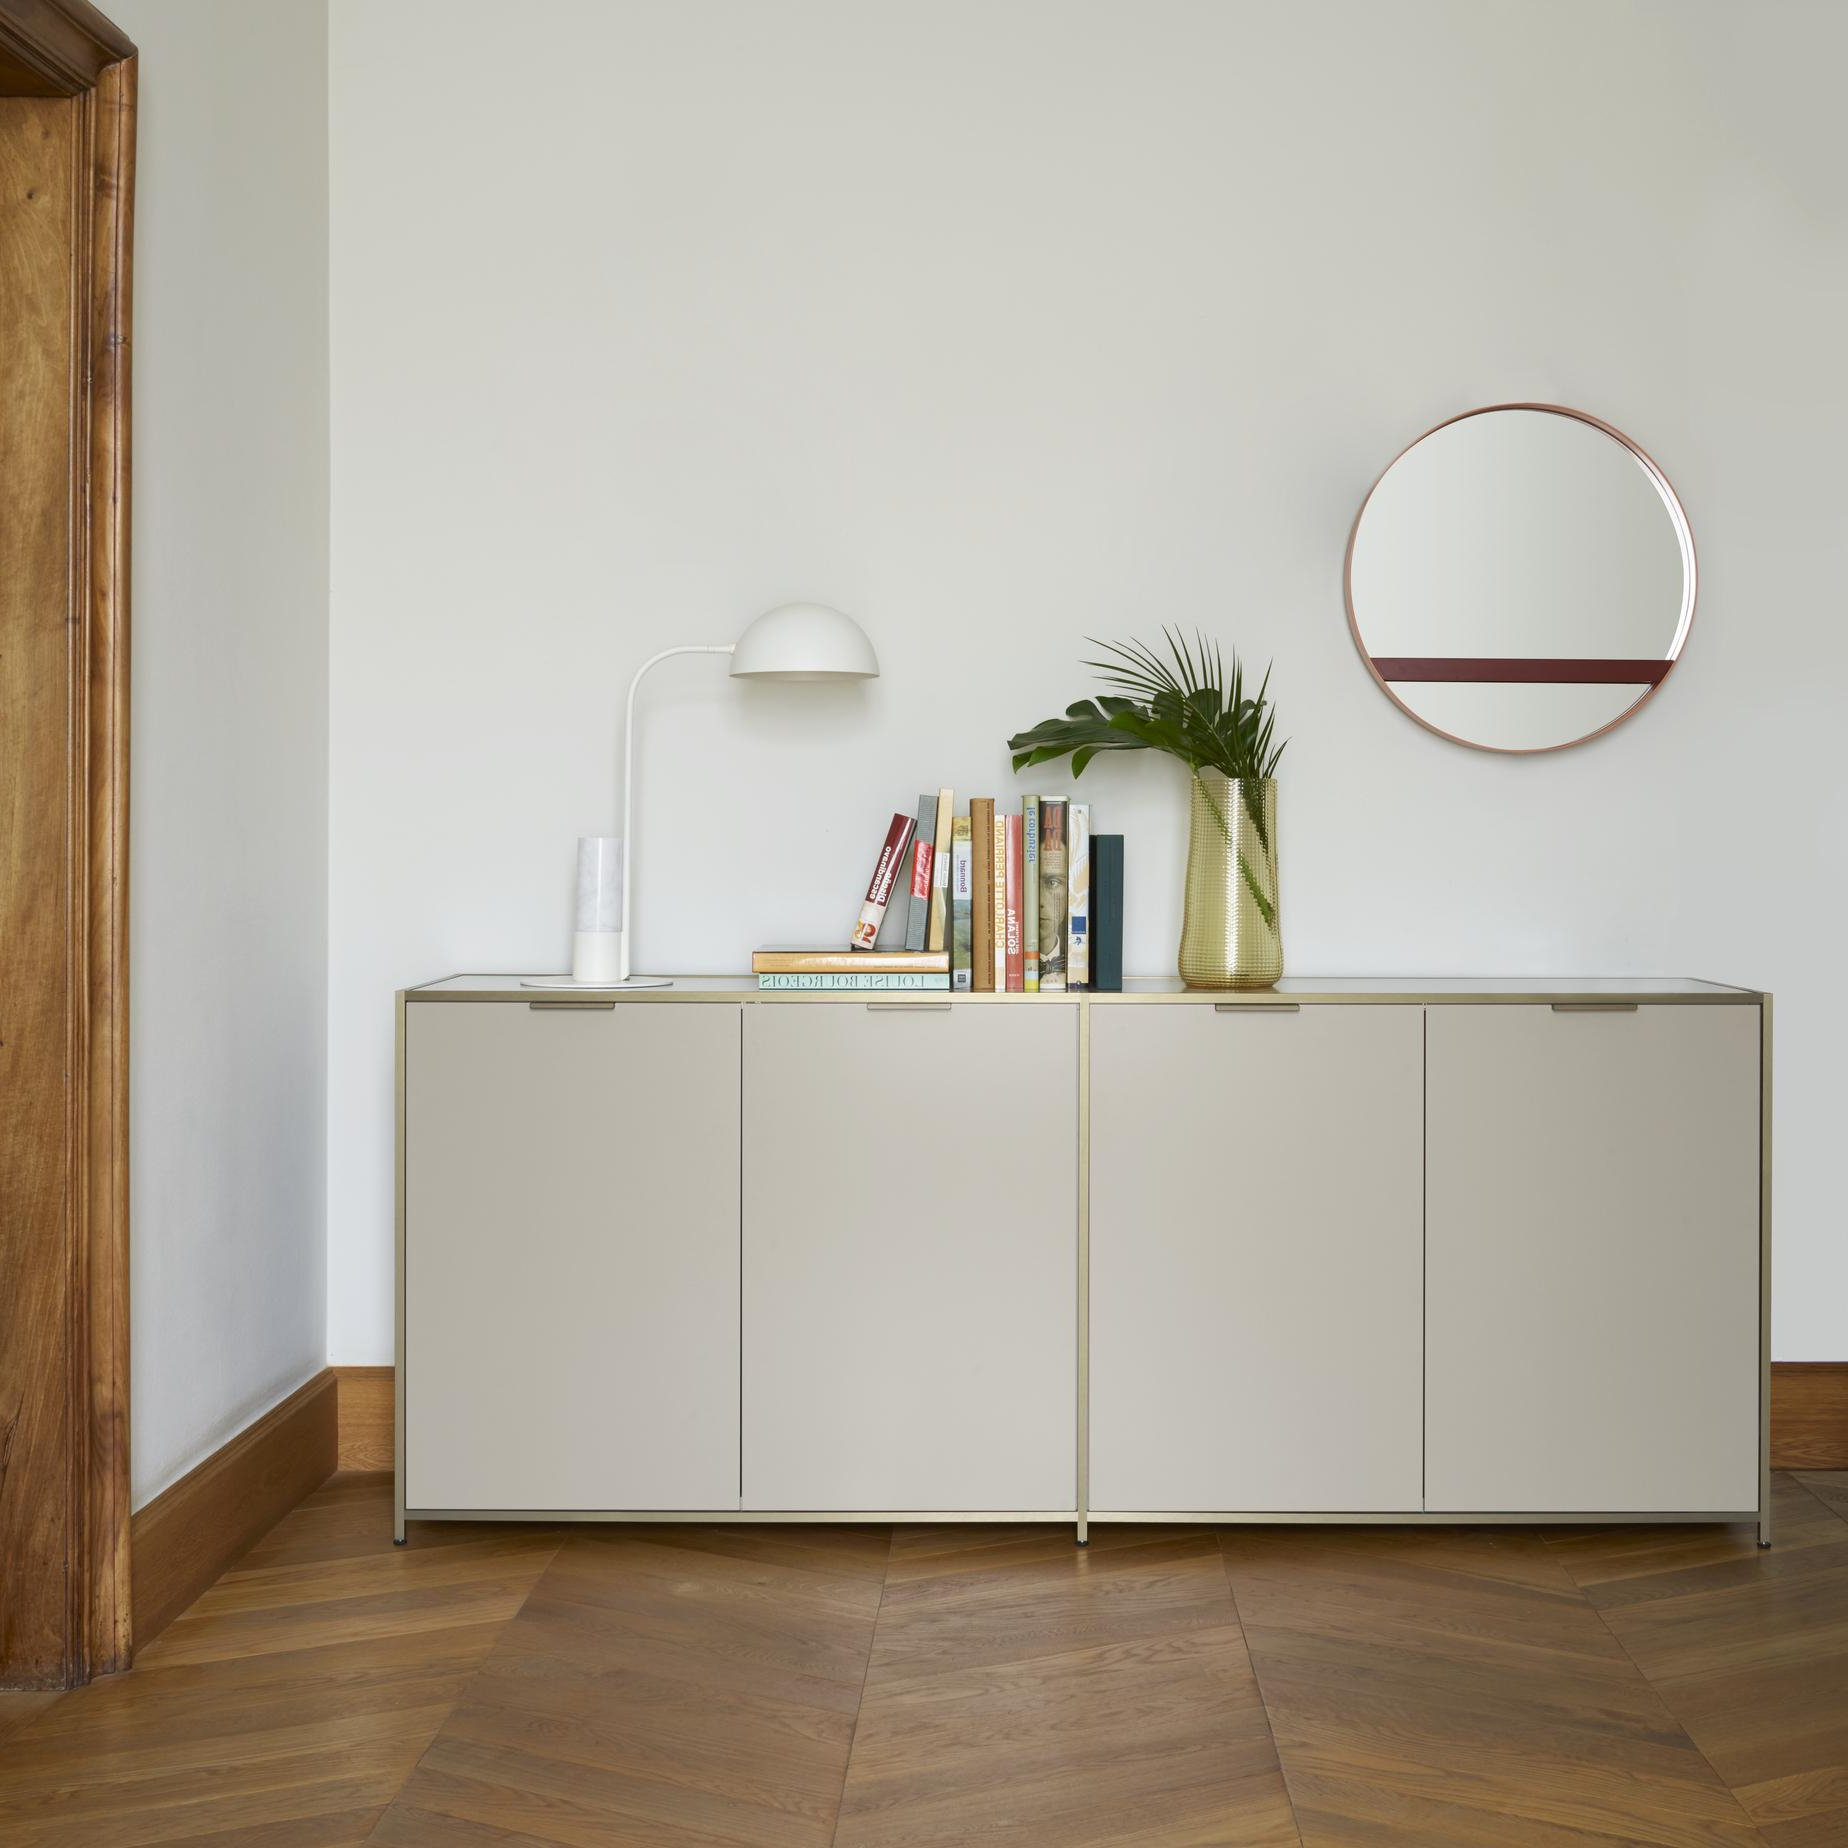 Dita, Sideboards From Designer : Pagnon & Pelhaître | Ligne Intended For Solana Sideboards (View 13 of 20)